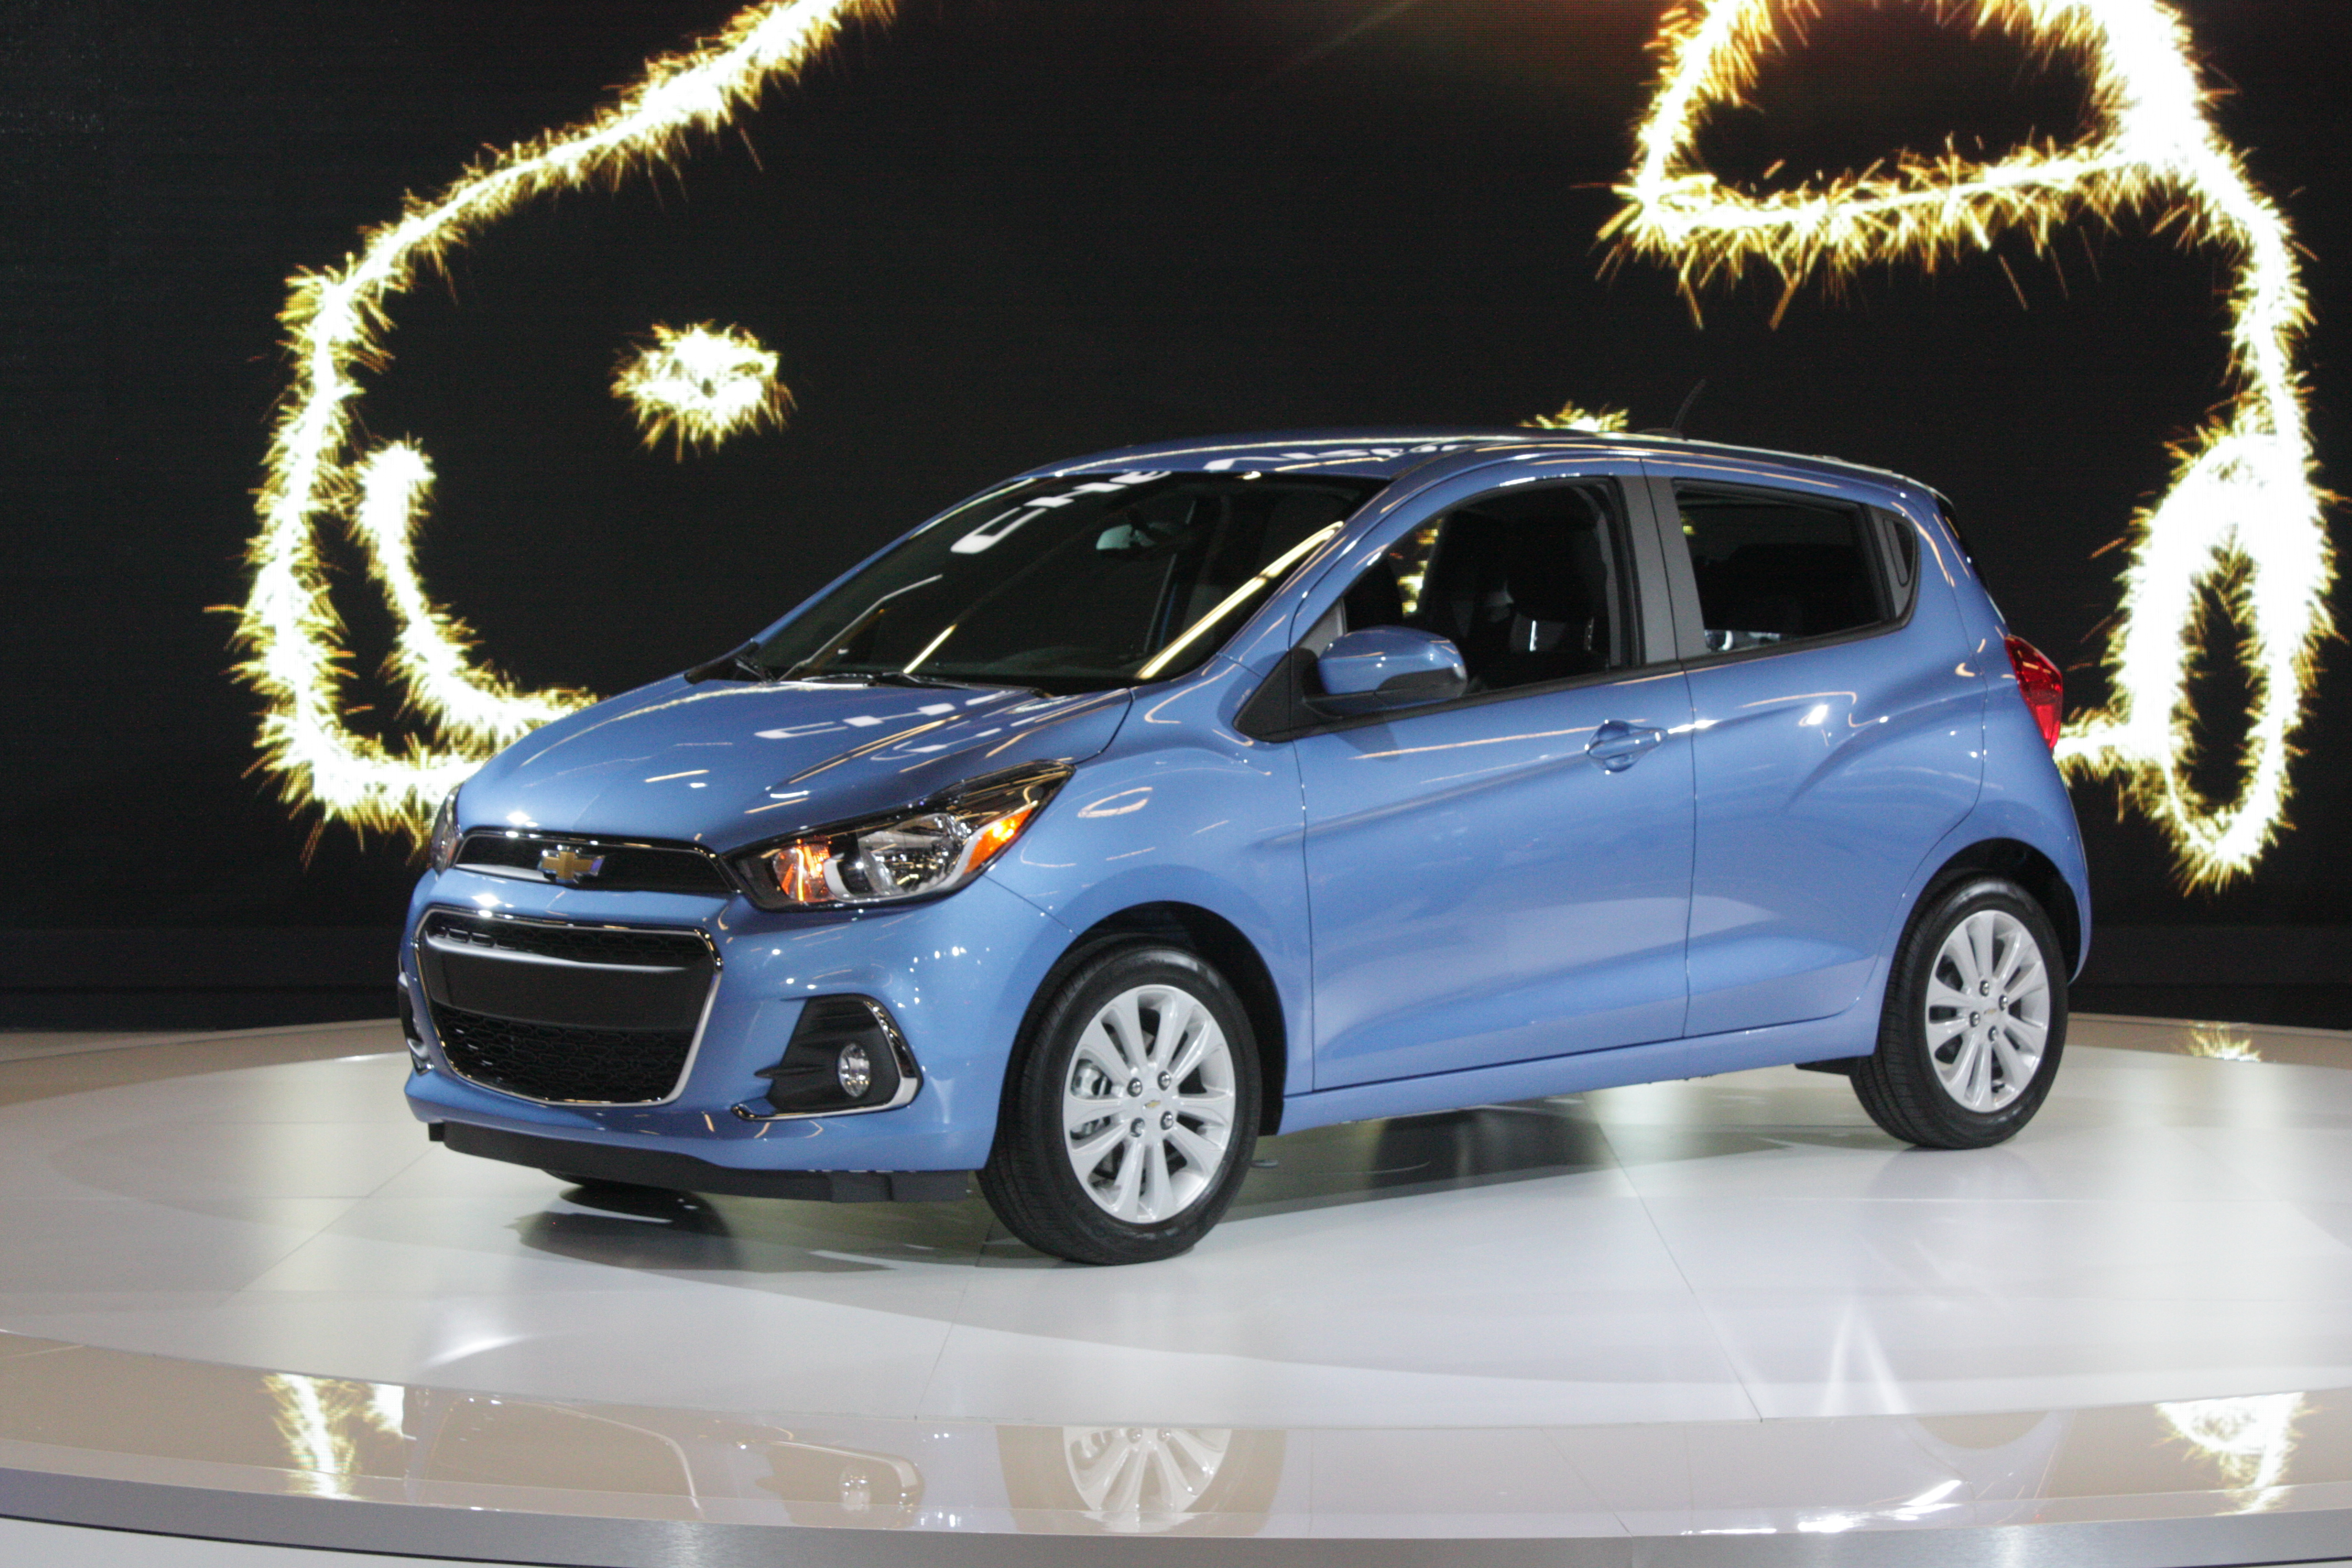 ... but the other three cars are no less significant: there's the Spark subcompact, which now boasts a sub-$10,000 starting price...